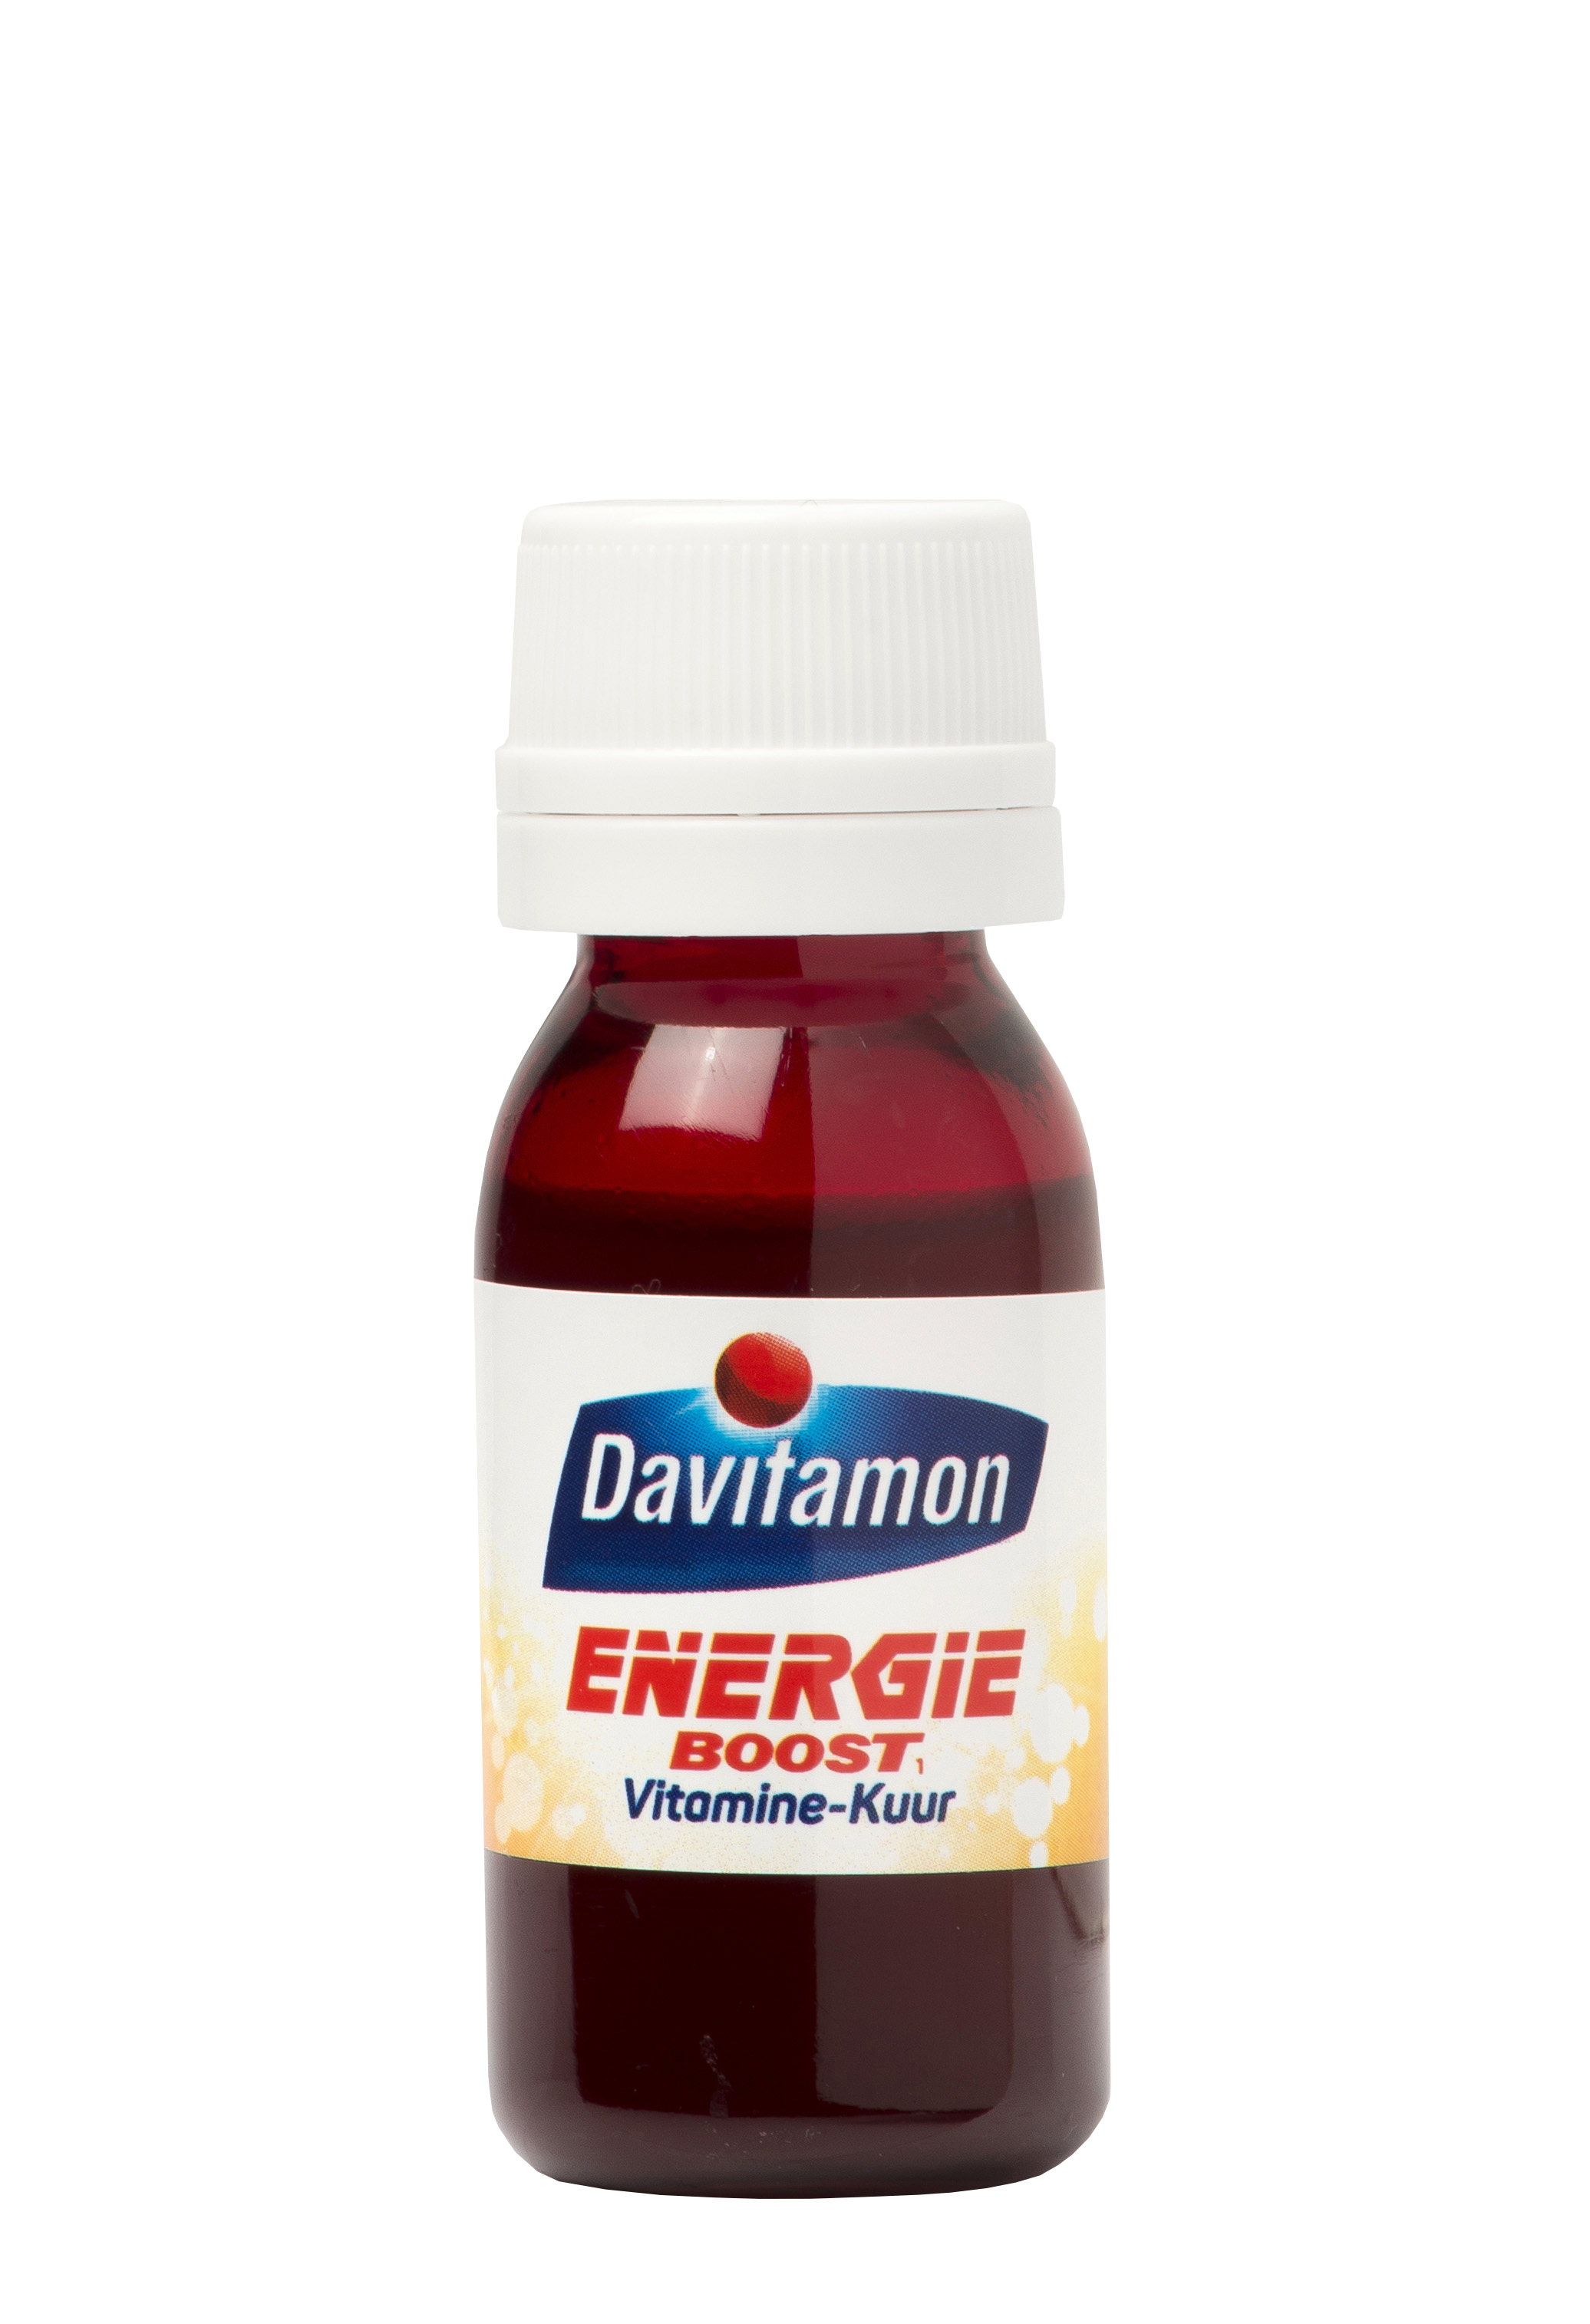 Davitamon Energie Boost Vitaminekuur Drinkflesjes product